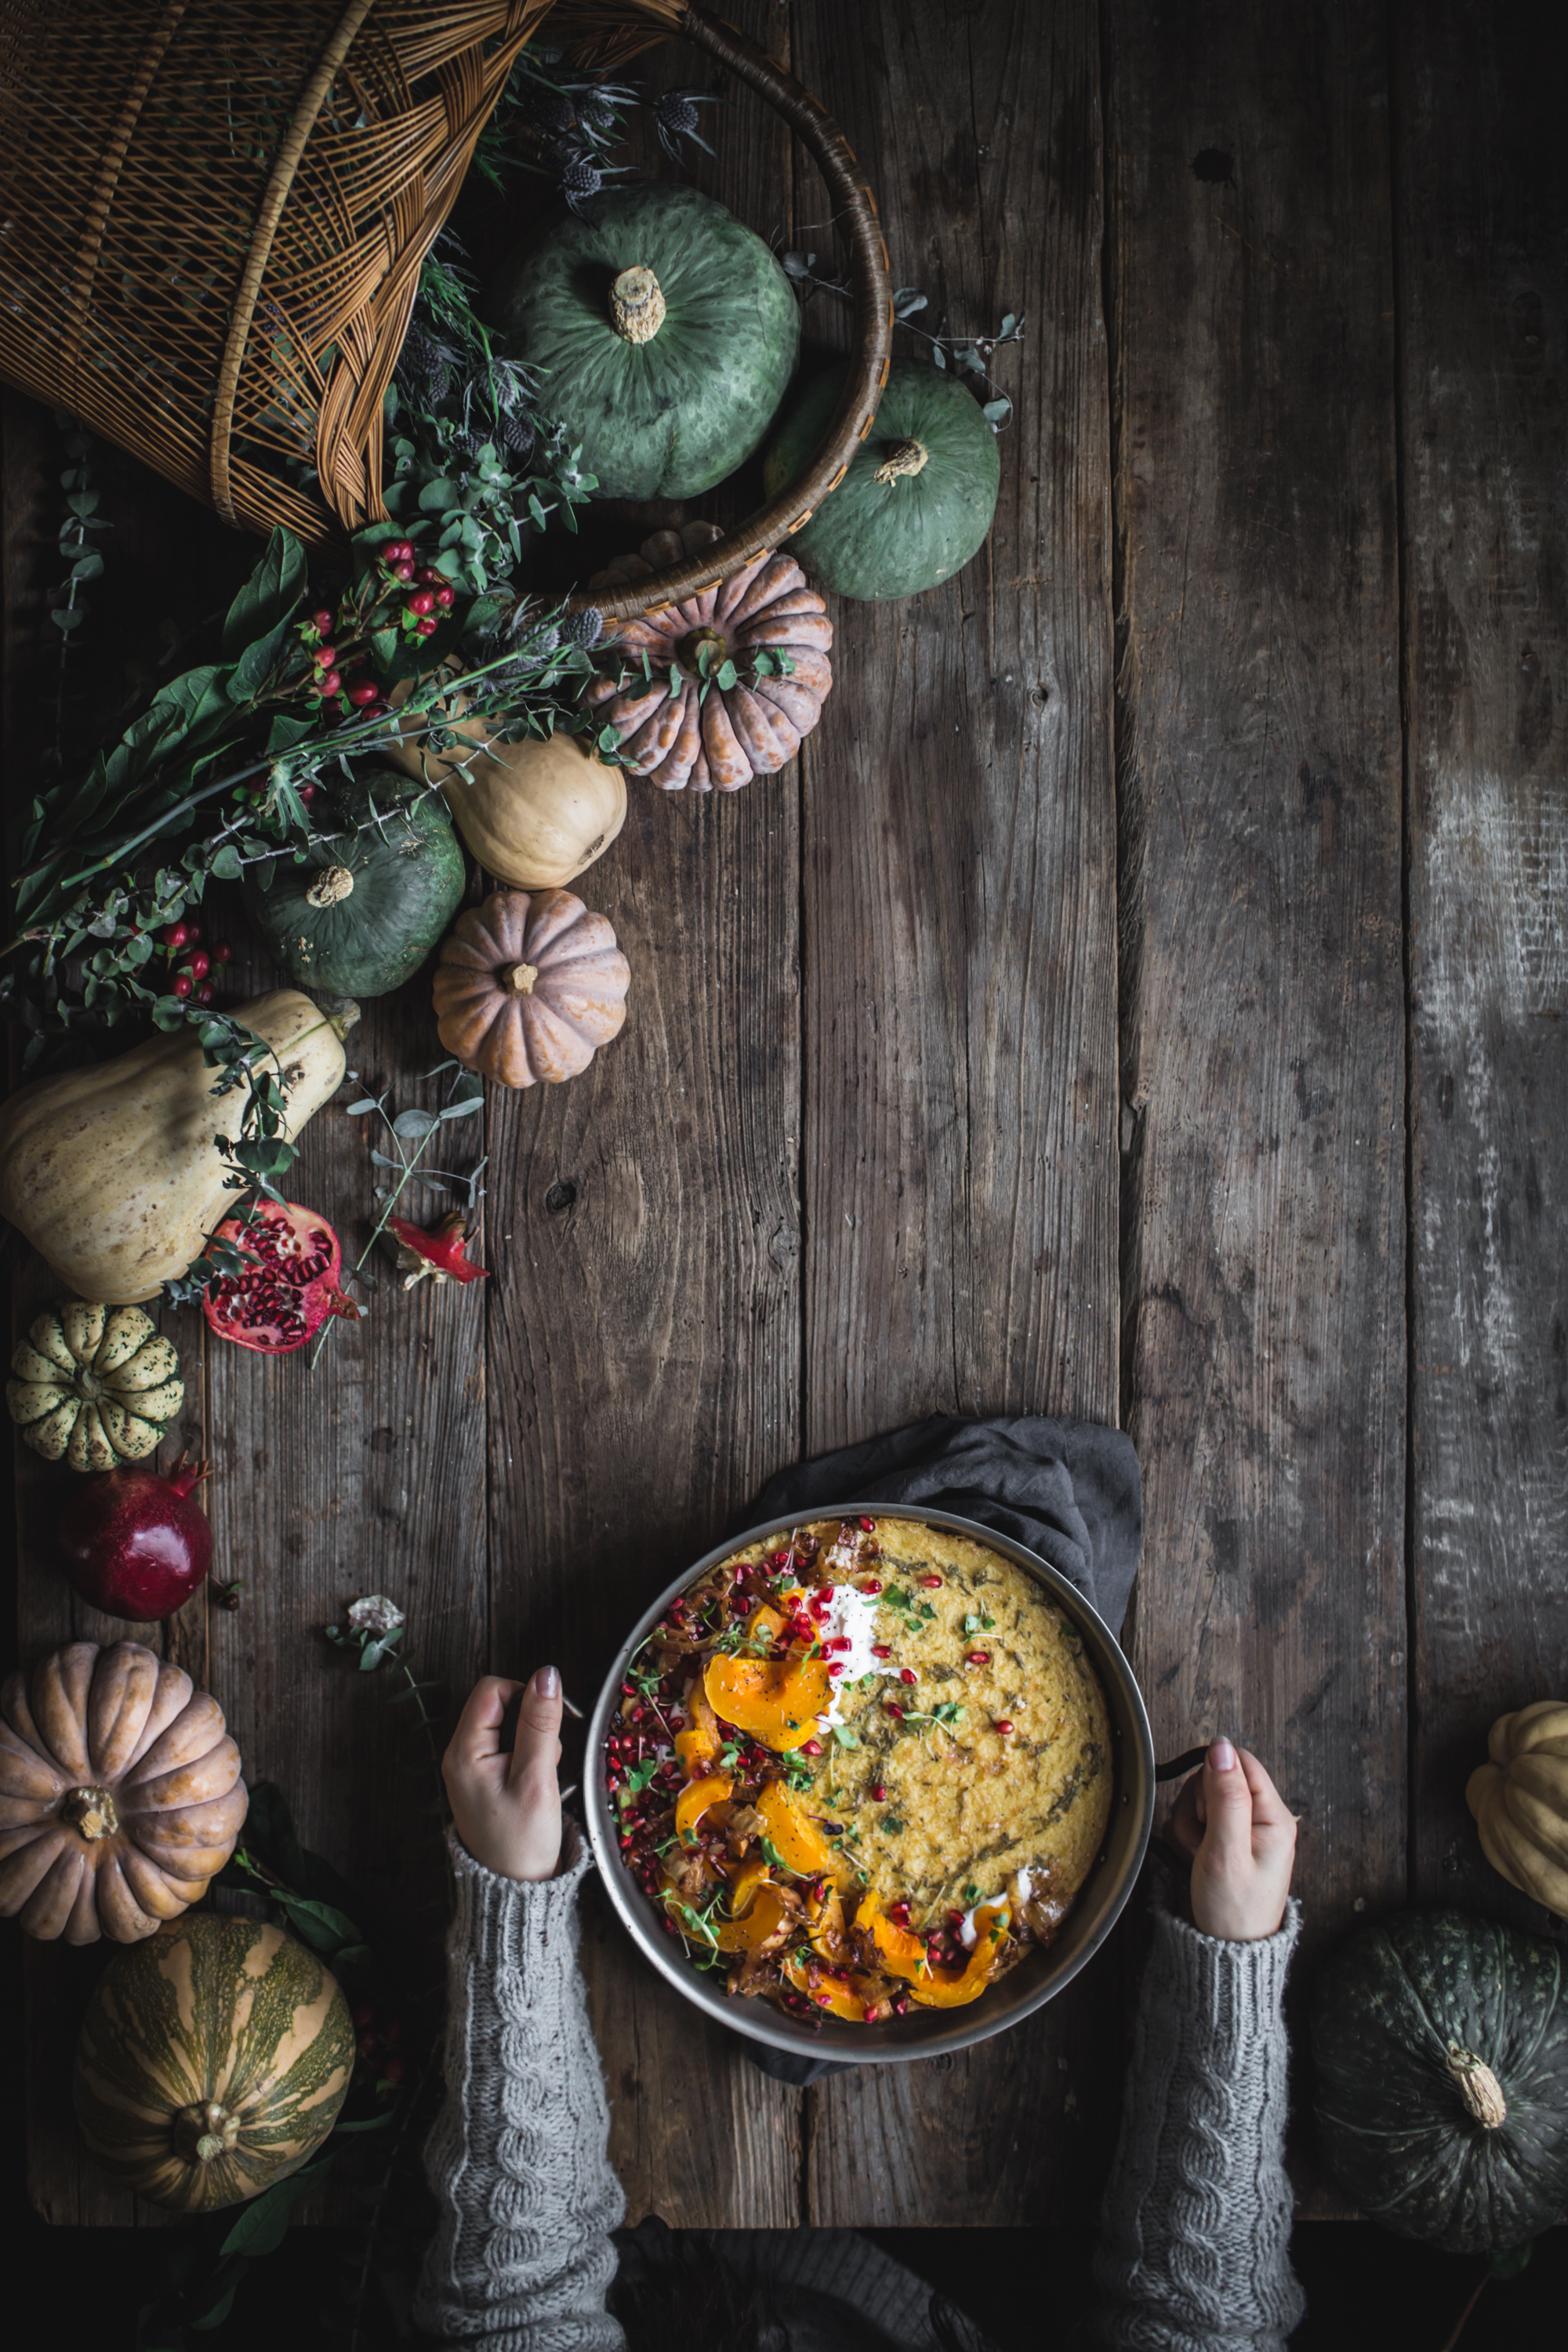 Savory Gluten Free Farinata Winter Squash Pancake with Caramelized Onions Greek Yogurt and Pomegranate Seeds by Eva Kosmas Flores